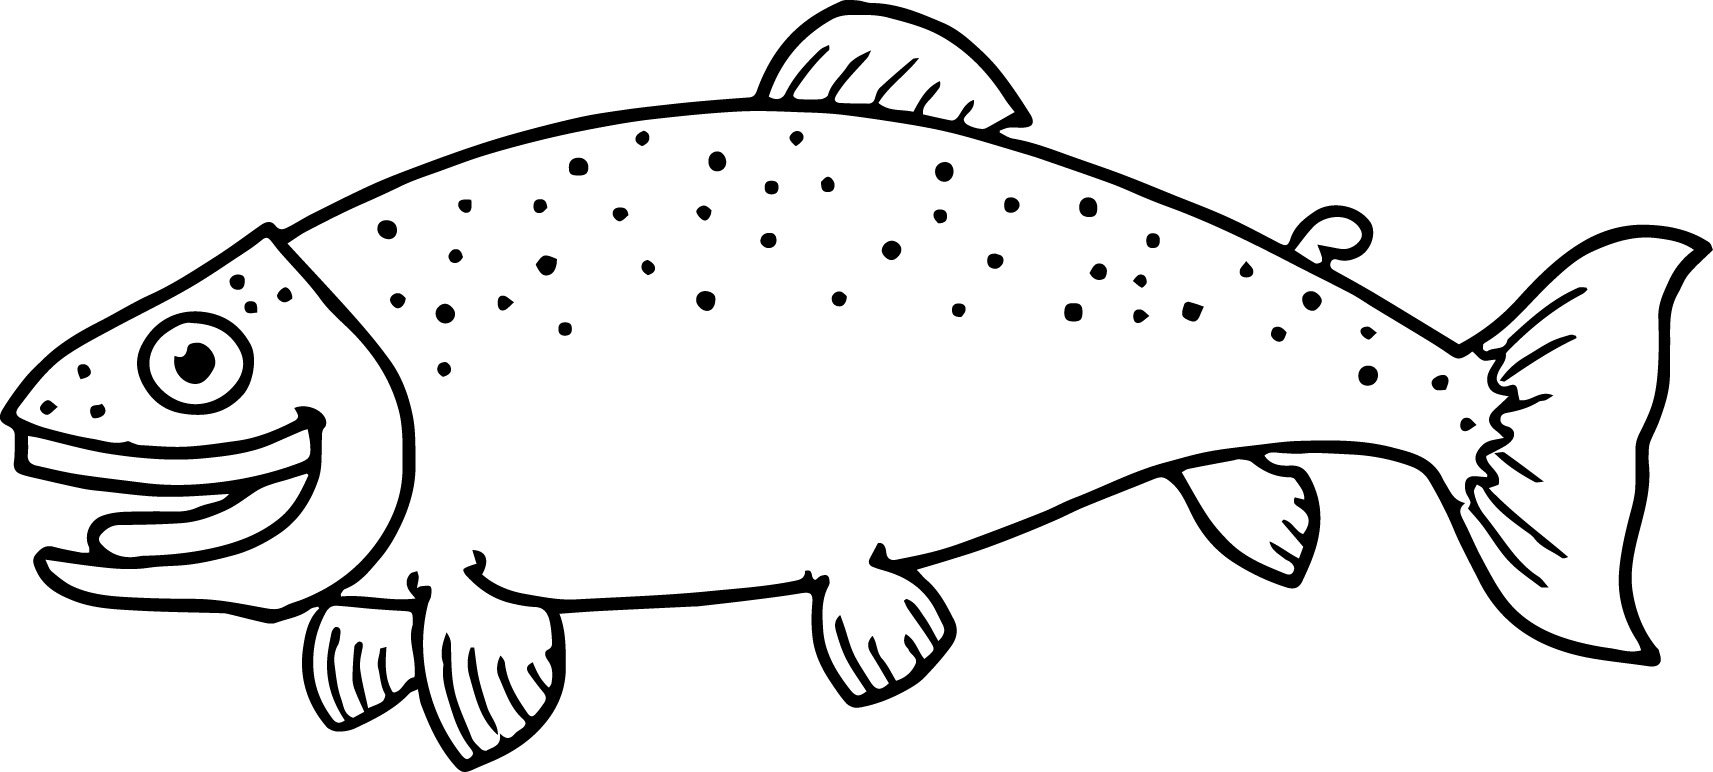 Little Happy Cartoon Fish Coloring Page Sheet